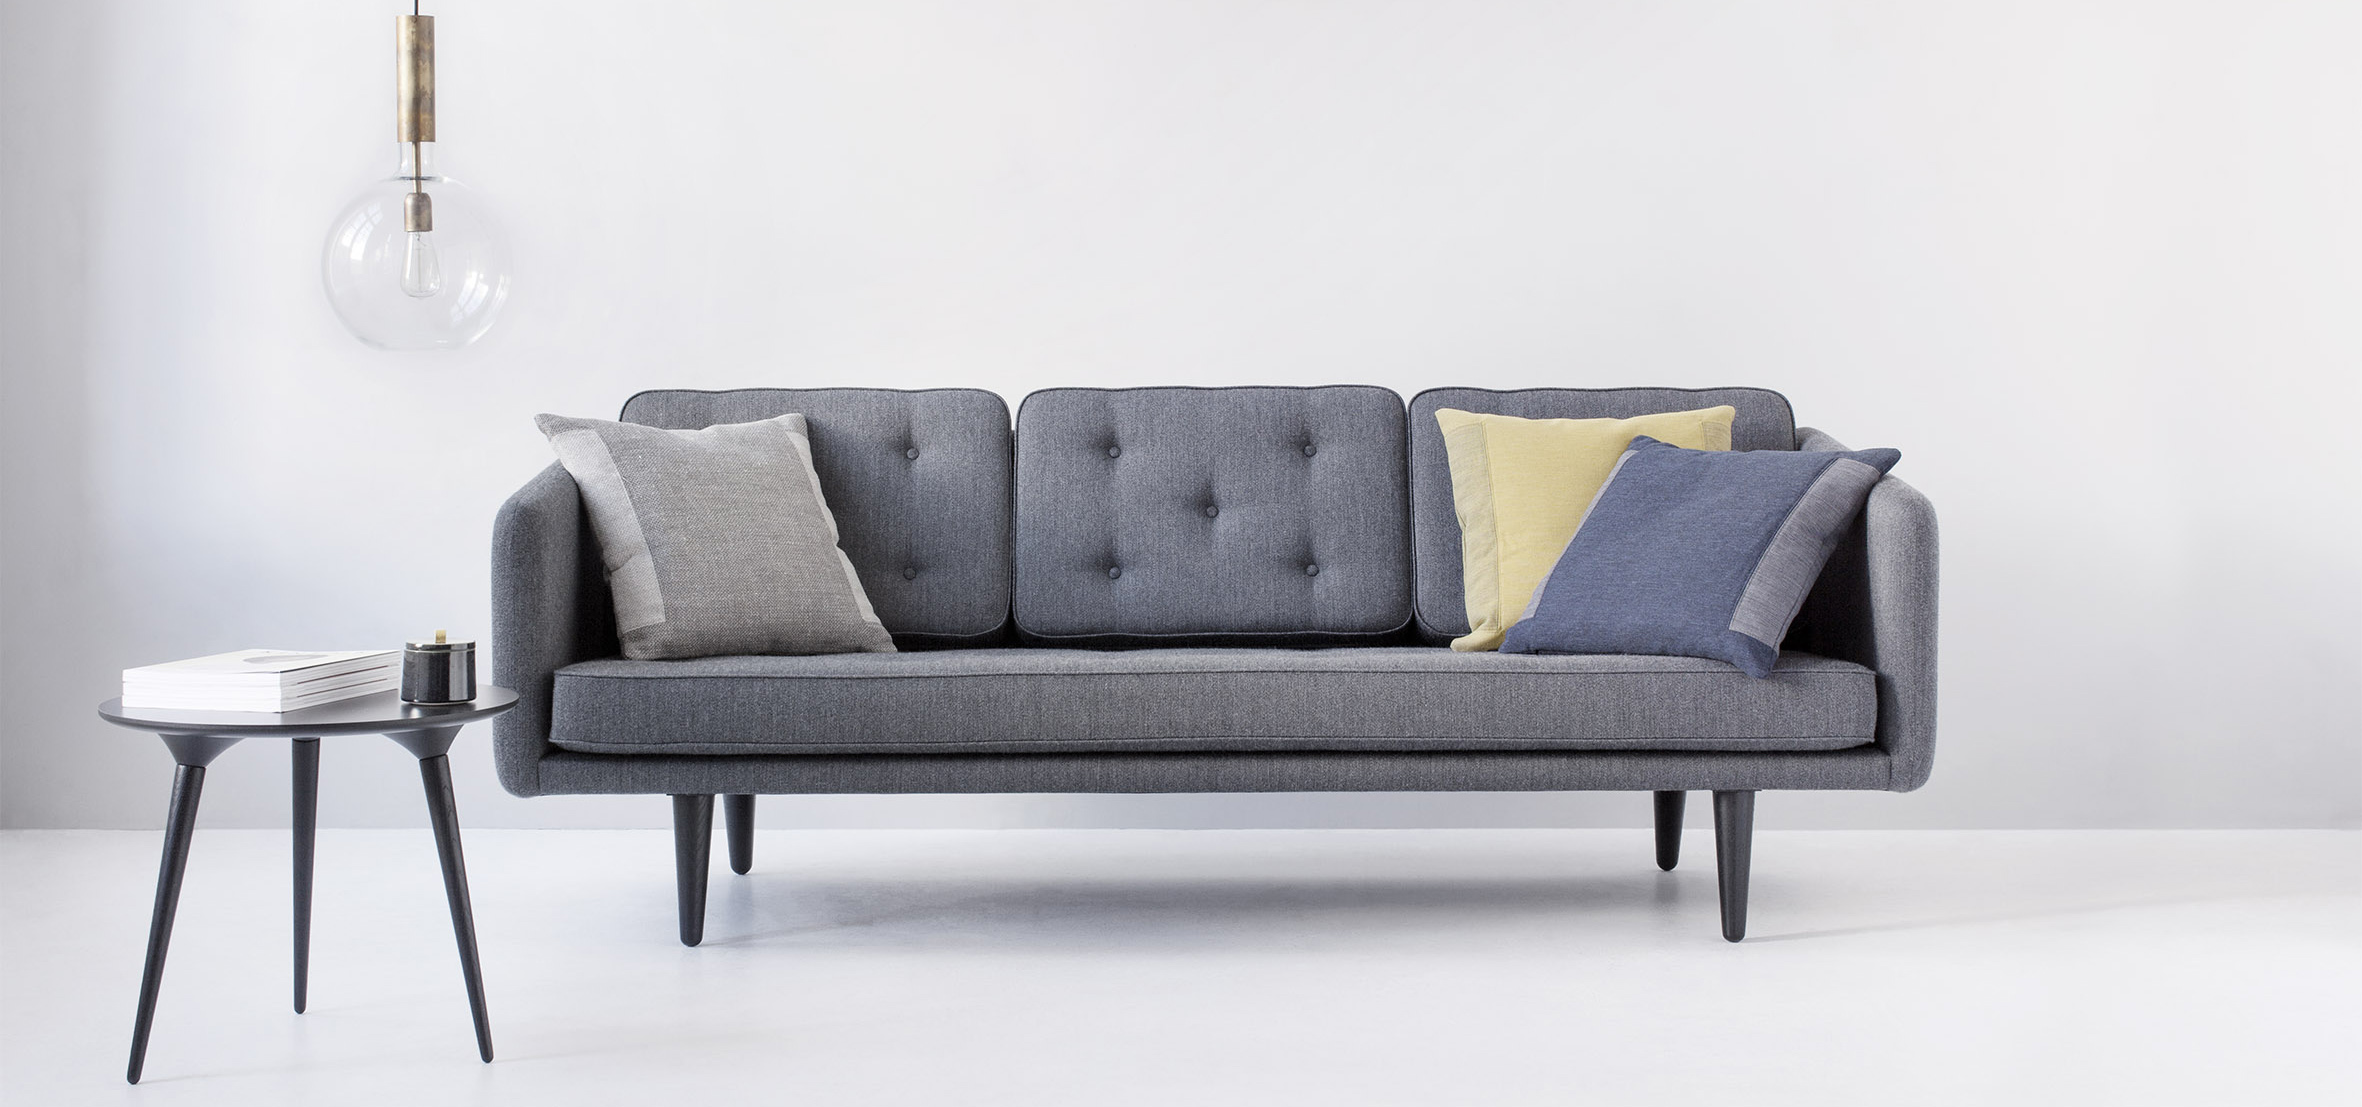 Home interiors with design couch by Fredericia furniture and pillows by Johannes Torpe Studios